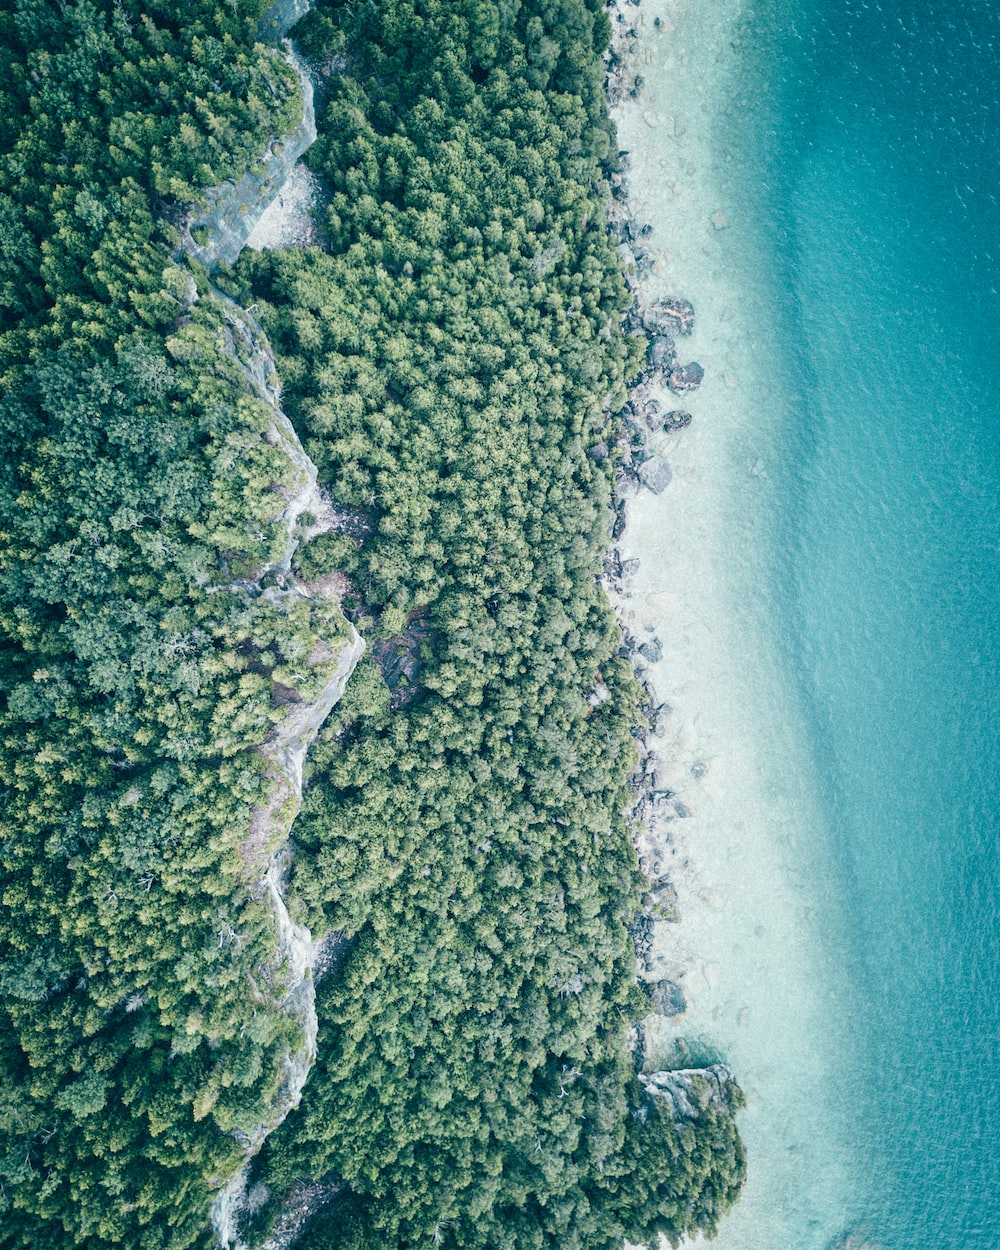 aerial photography of ocean near trees